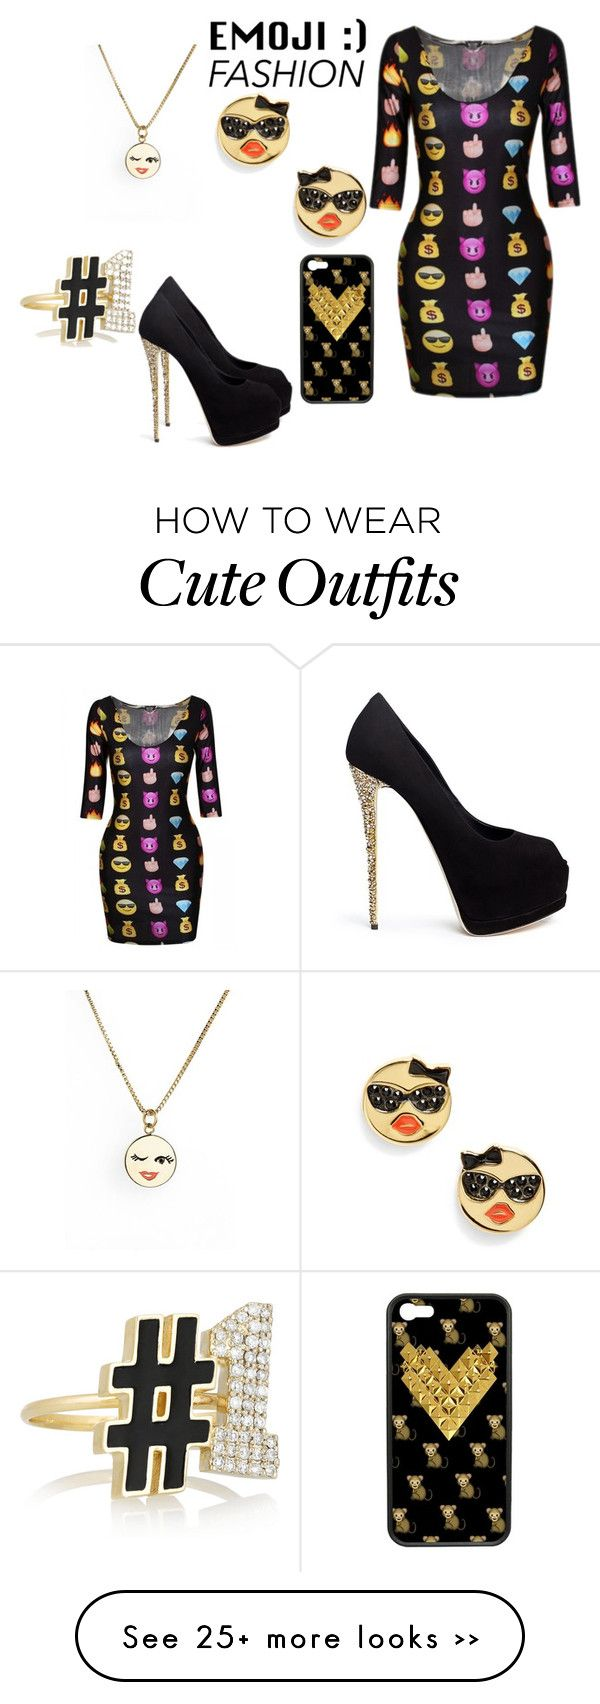 """""""Emoji Fashion Outfit (contest entry )"""" by jelly12-861 on Polyvore featuring Alison Lou, Kate Spade, Giuseppe Zanotti, Wildflower, contest, jewelry and emoji"""